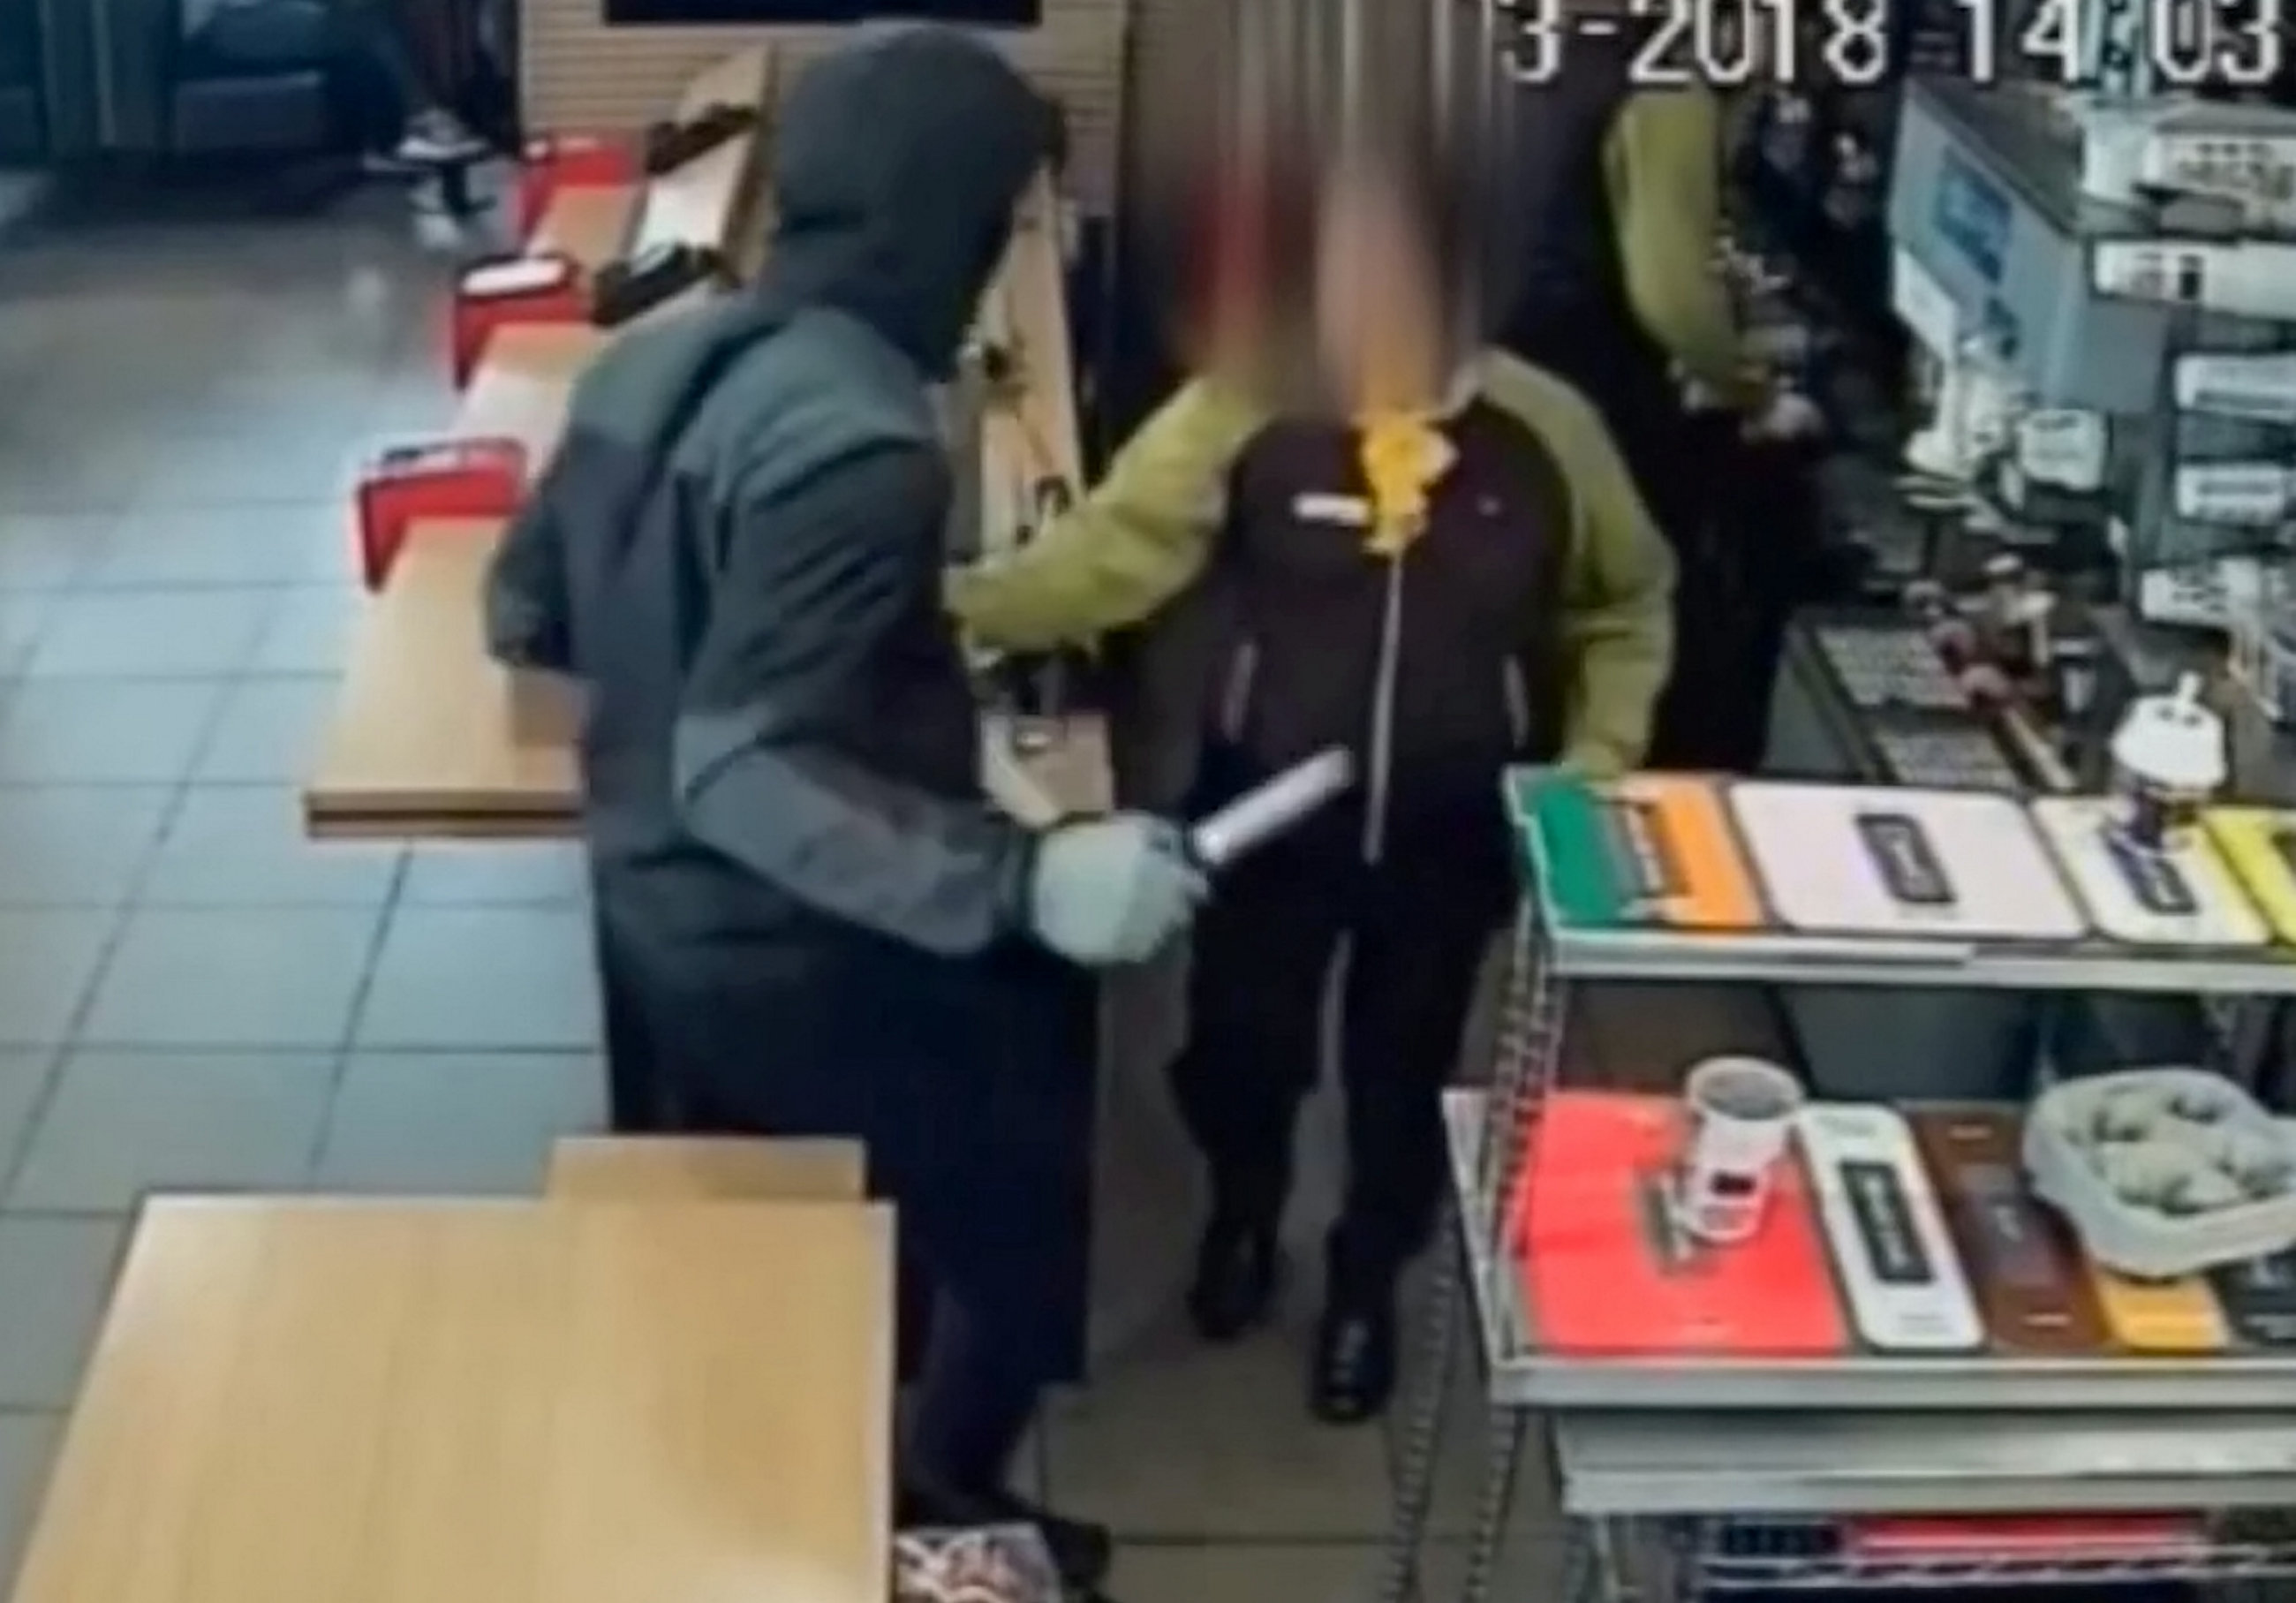 McDonald's Monopoly cards stolen by armed knifeman who went behind counter